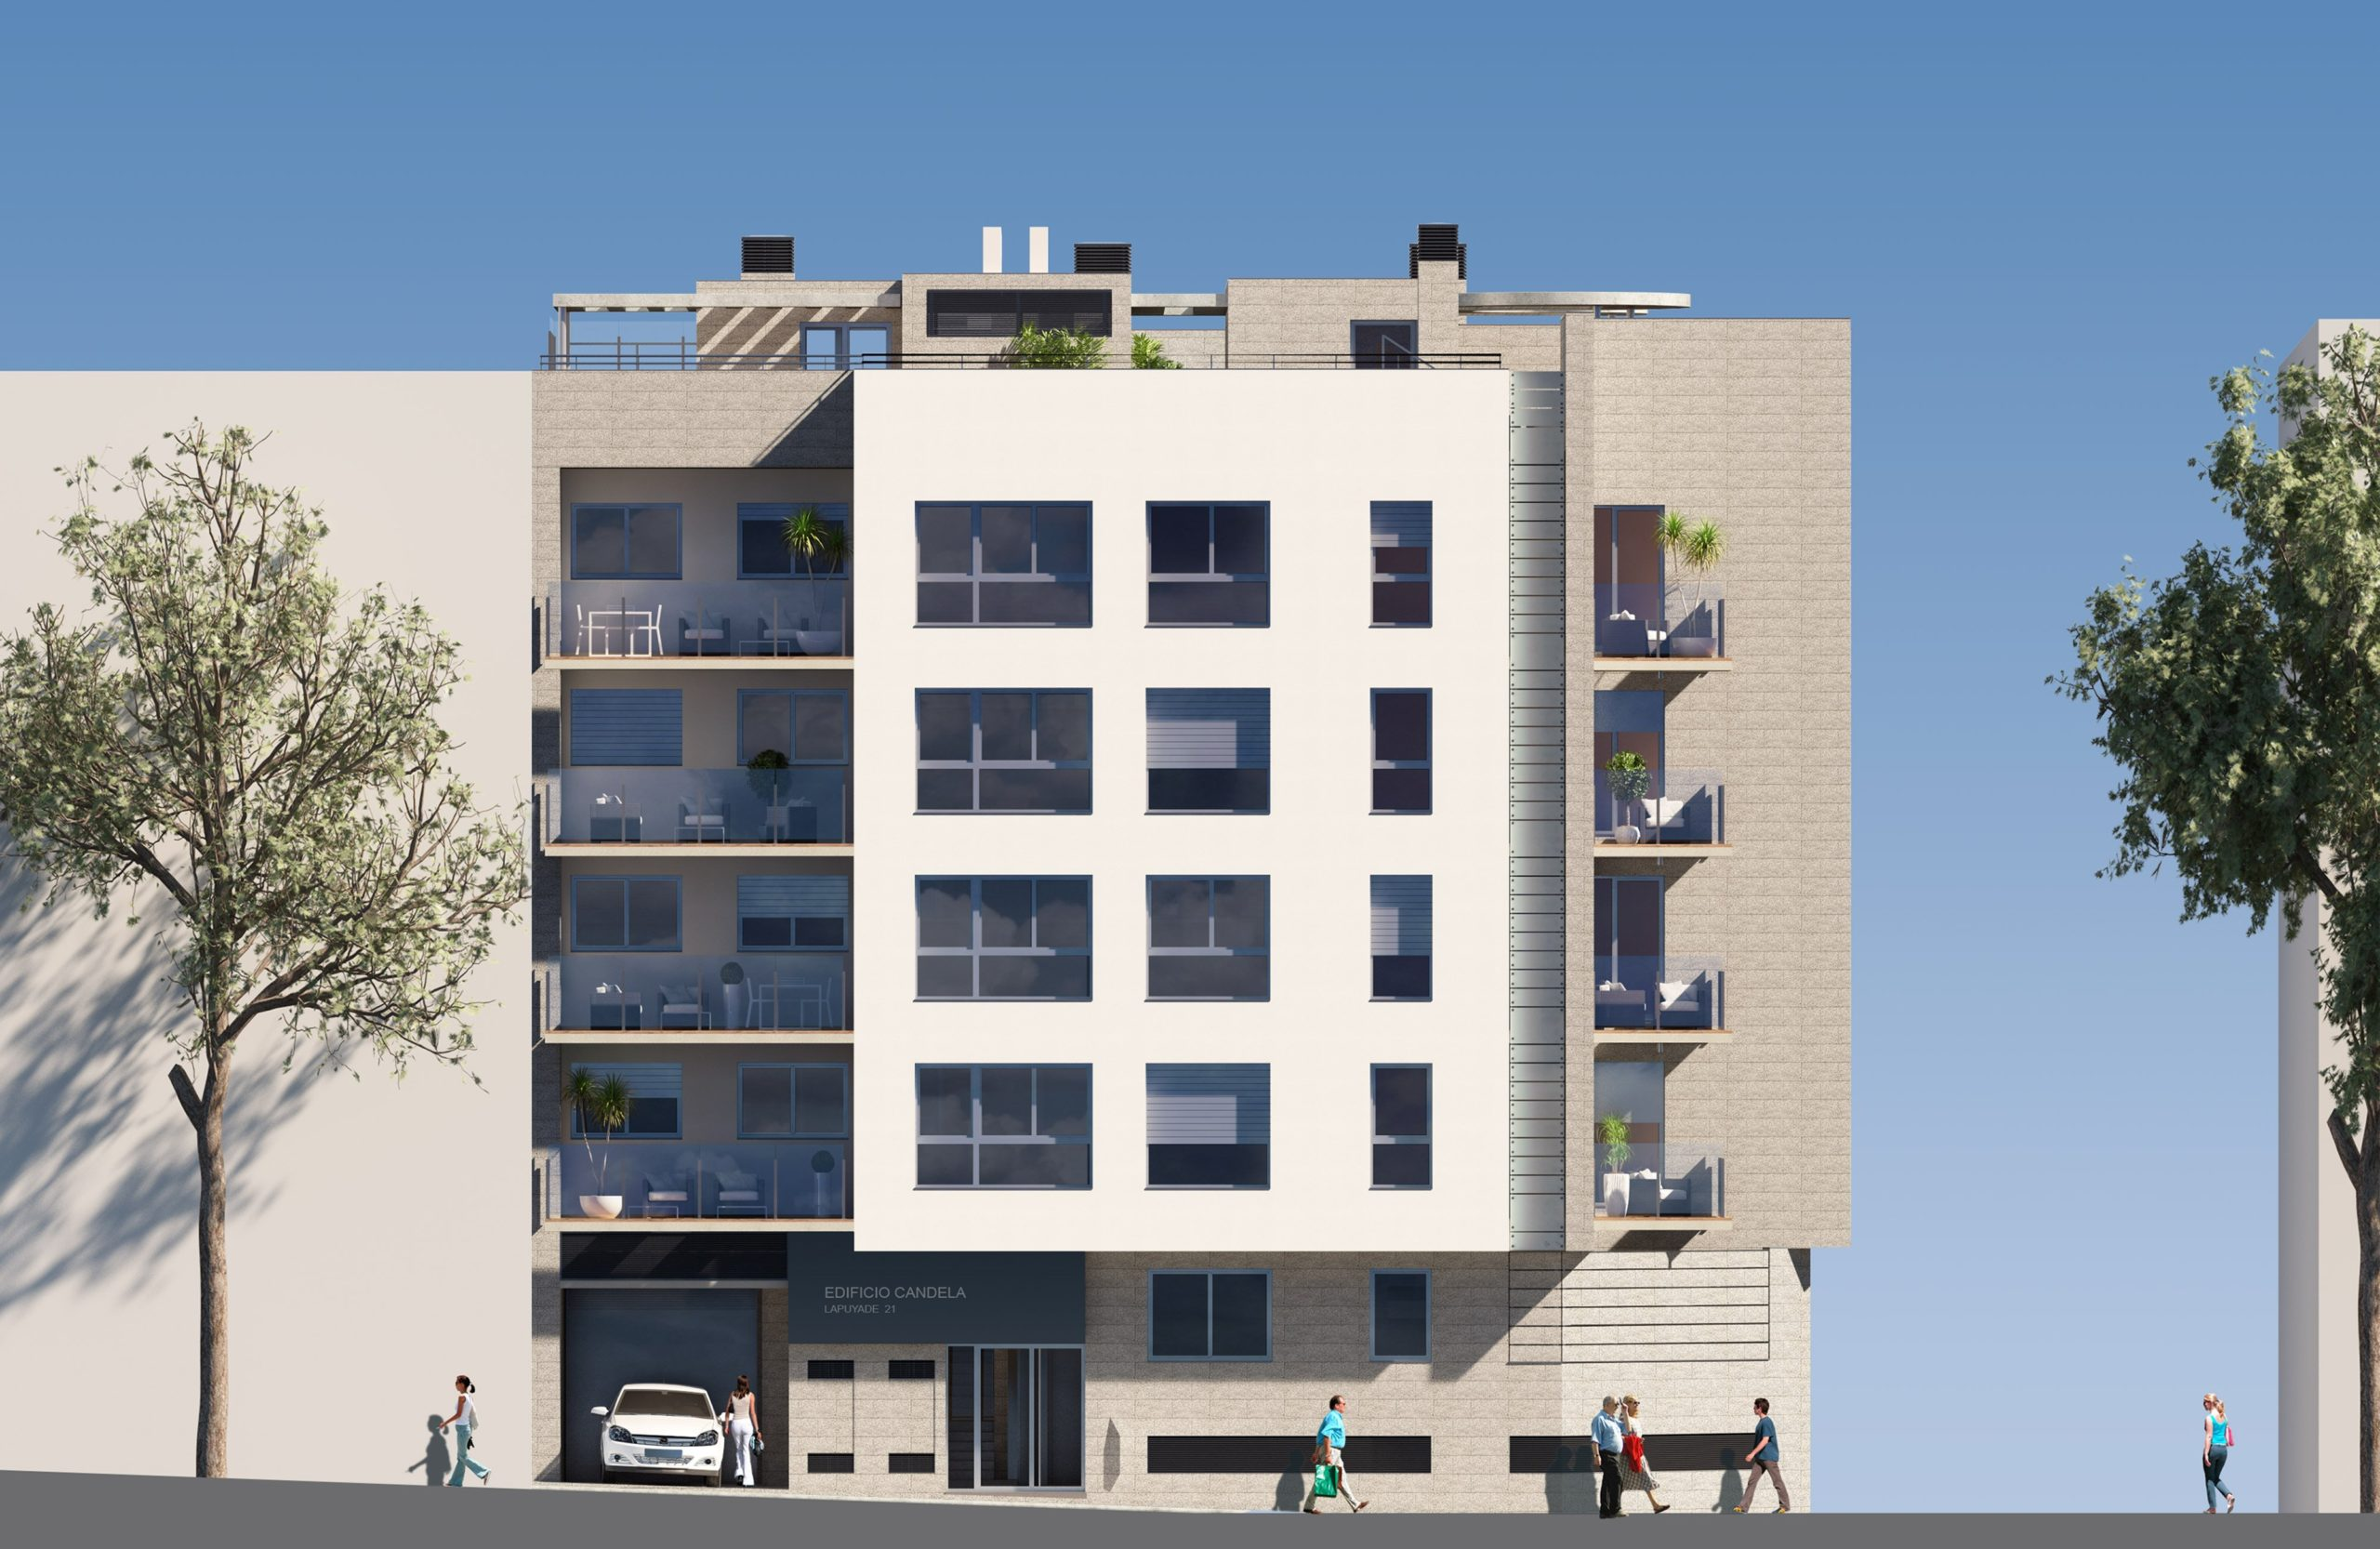 Render elevation of a block of flats by GAYARRE infografia